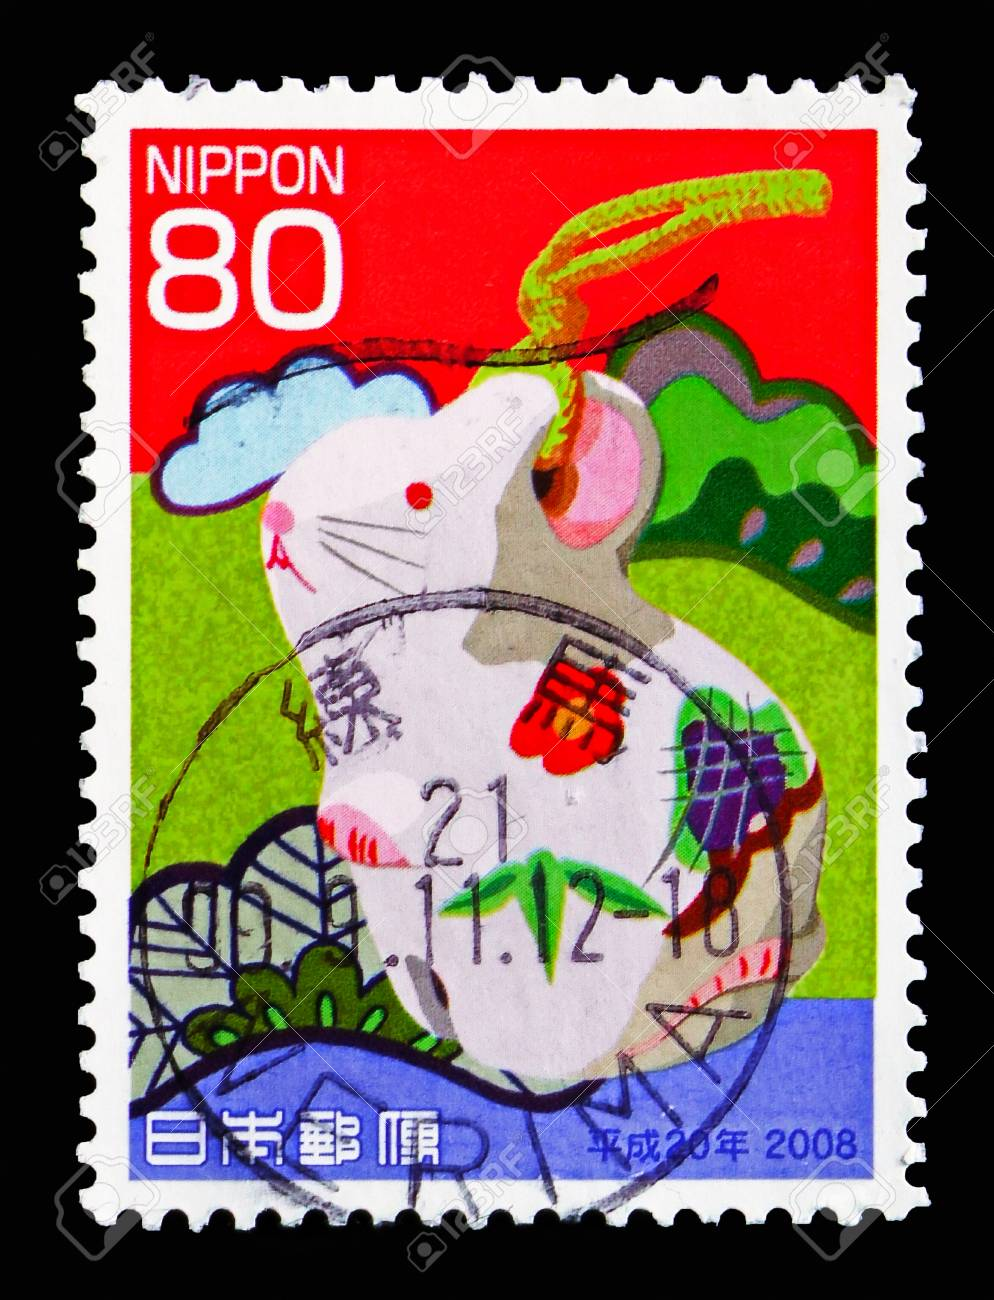 MOSCOW, RUSSIA - AUGUST 18, 2018: A stamp printed in Japan shows